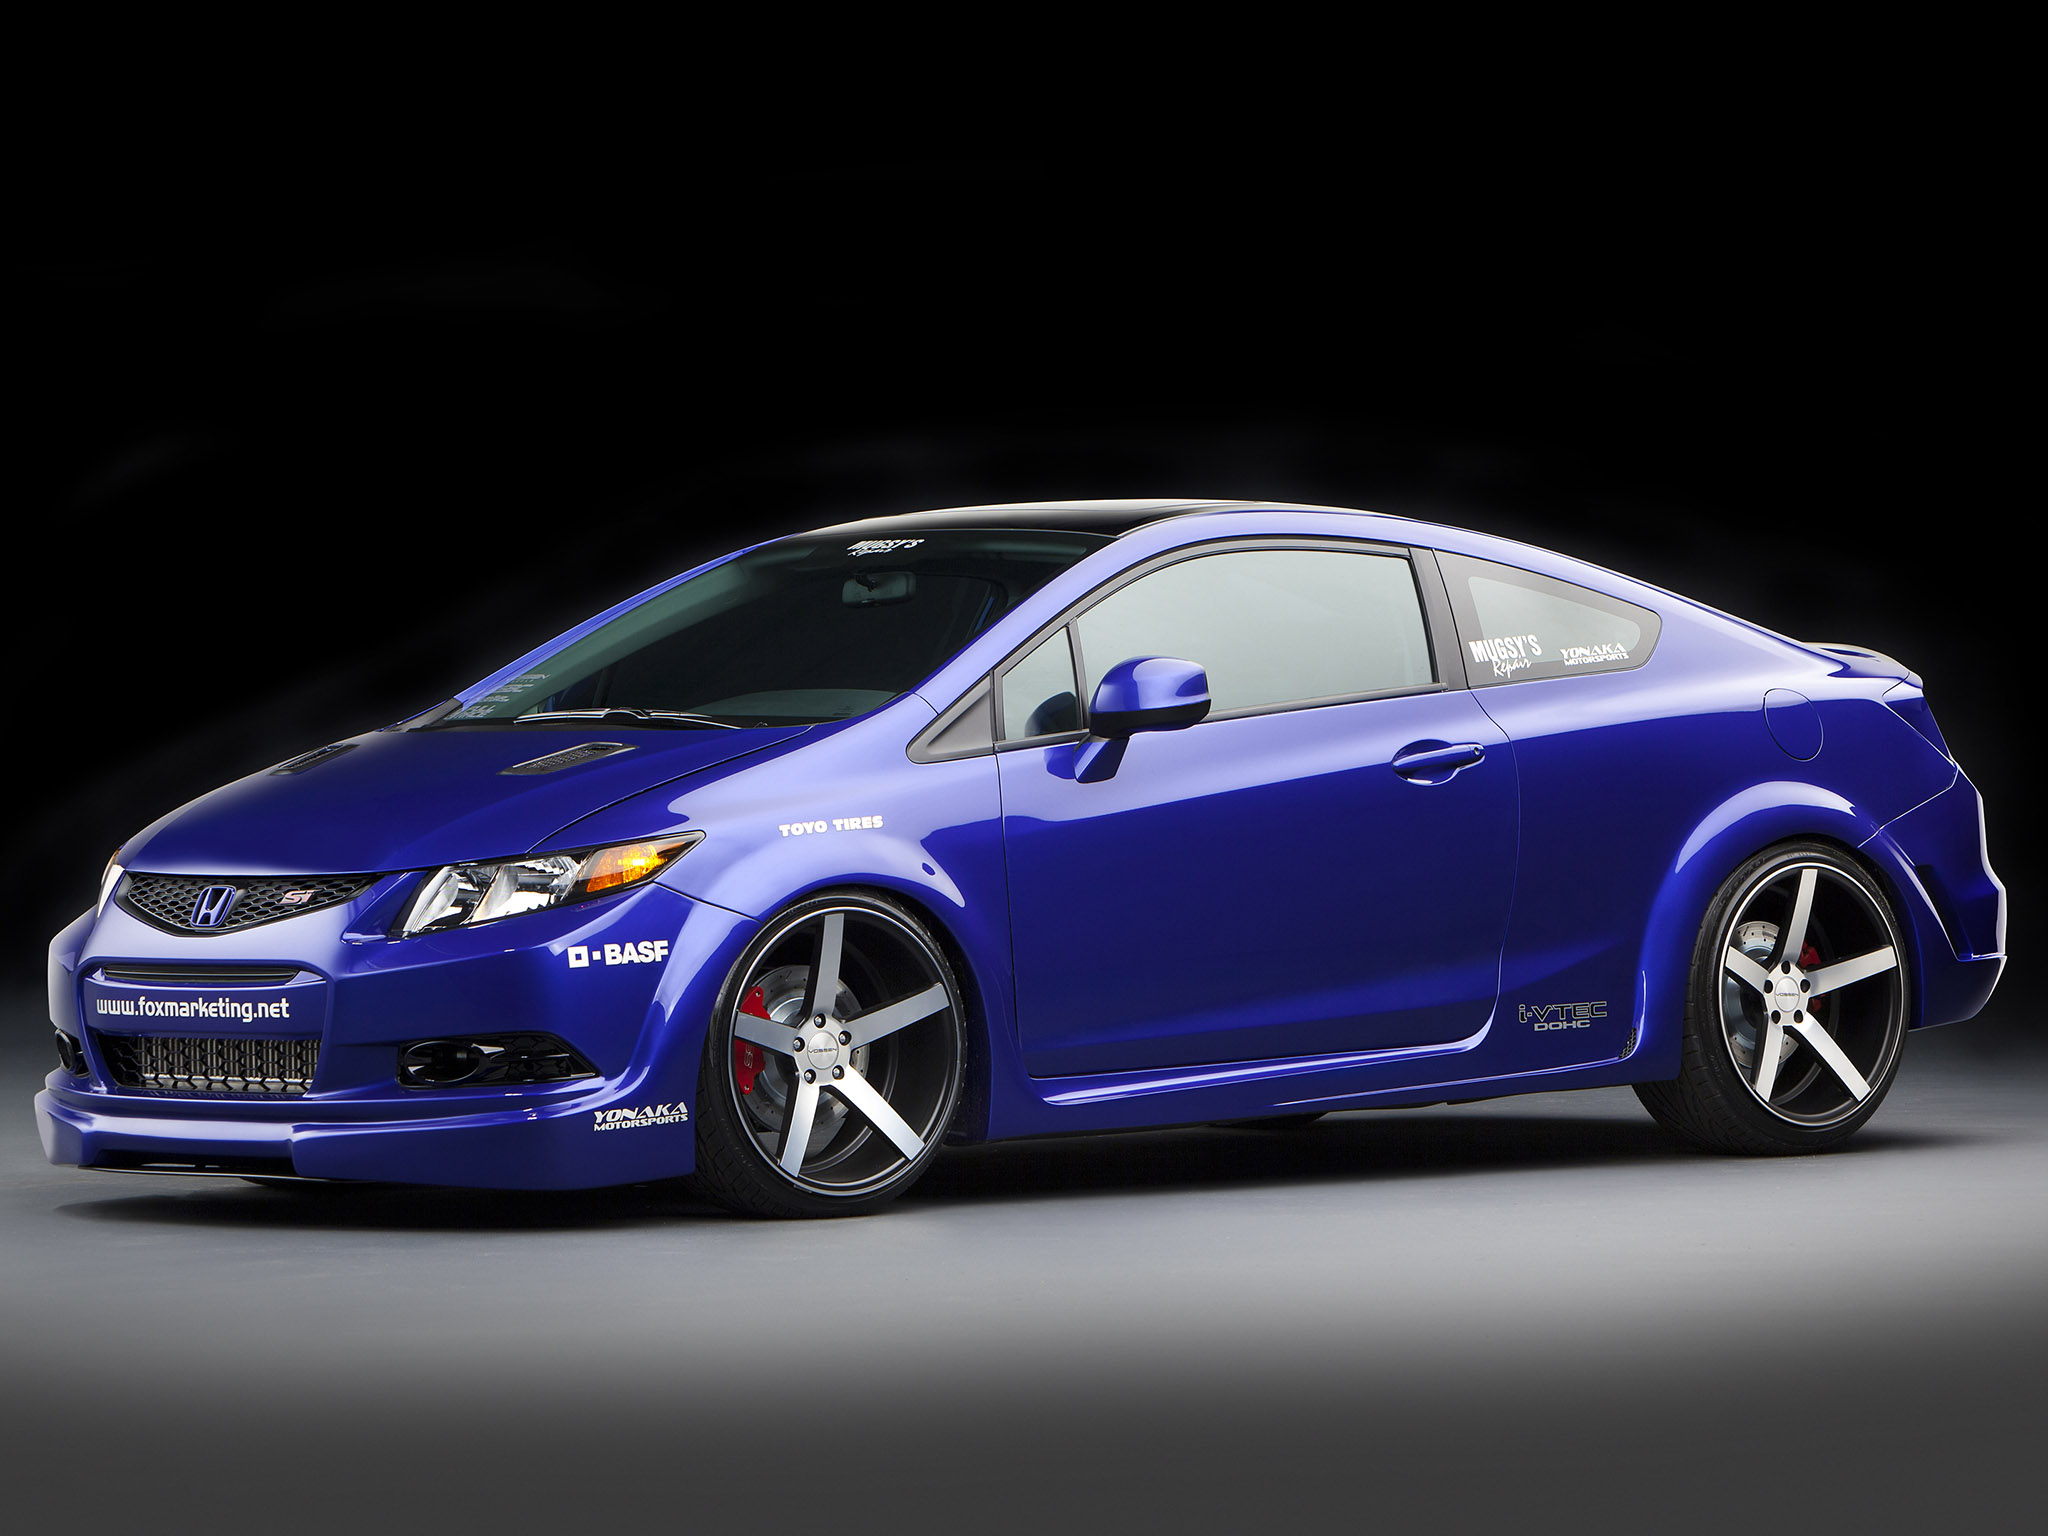 2011 Honda Civic Si Coupe Tuning Wallpaper 2048x1536